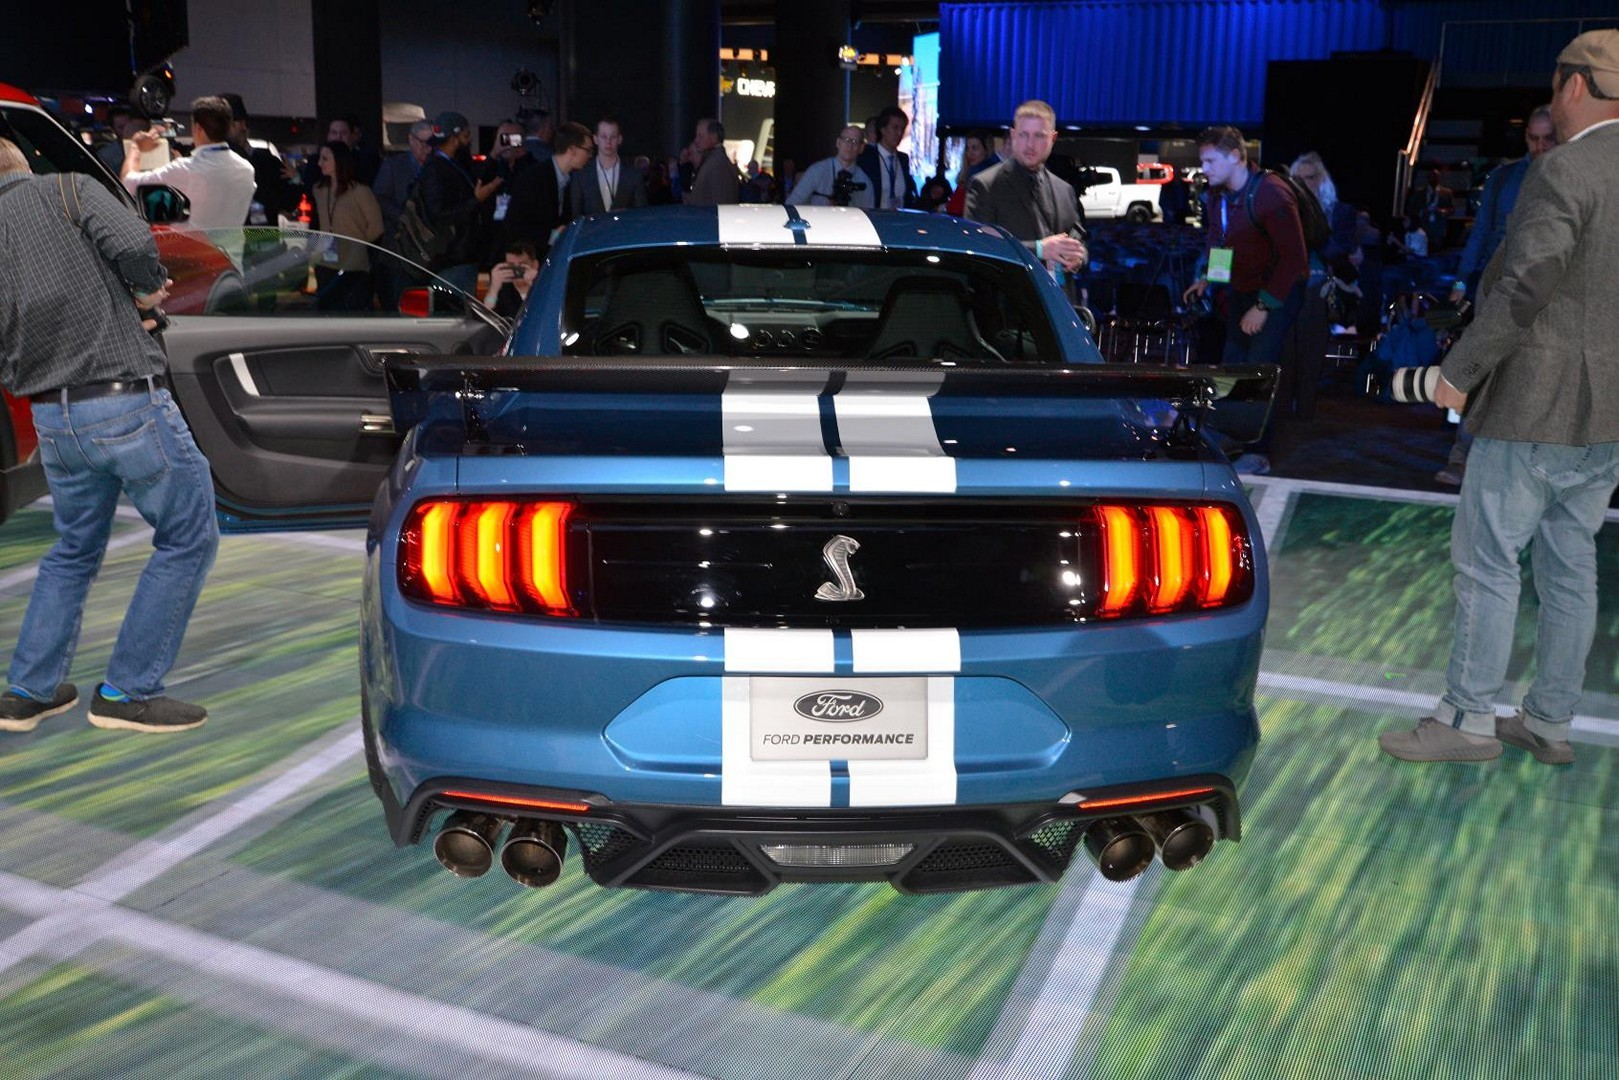 2020 Shelby GT500 VIN 001 Sells For $1.1 Million At ...